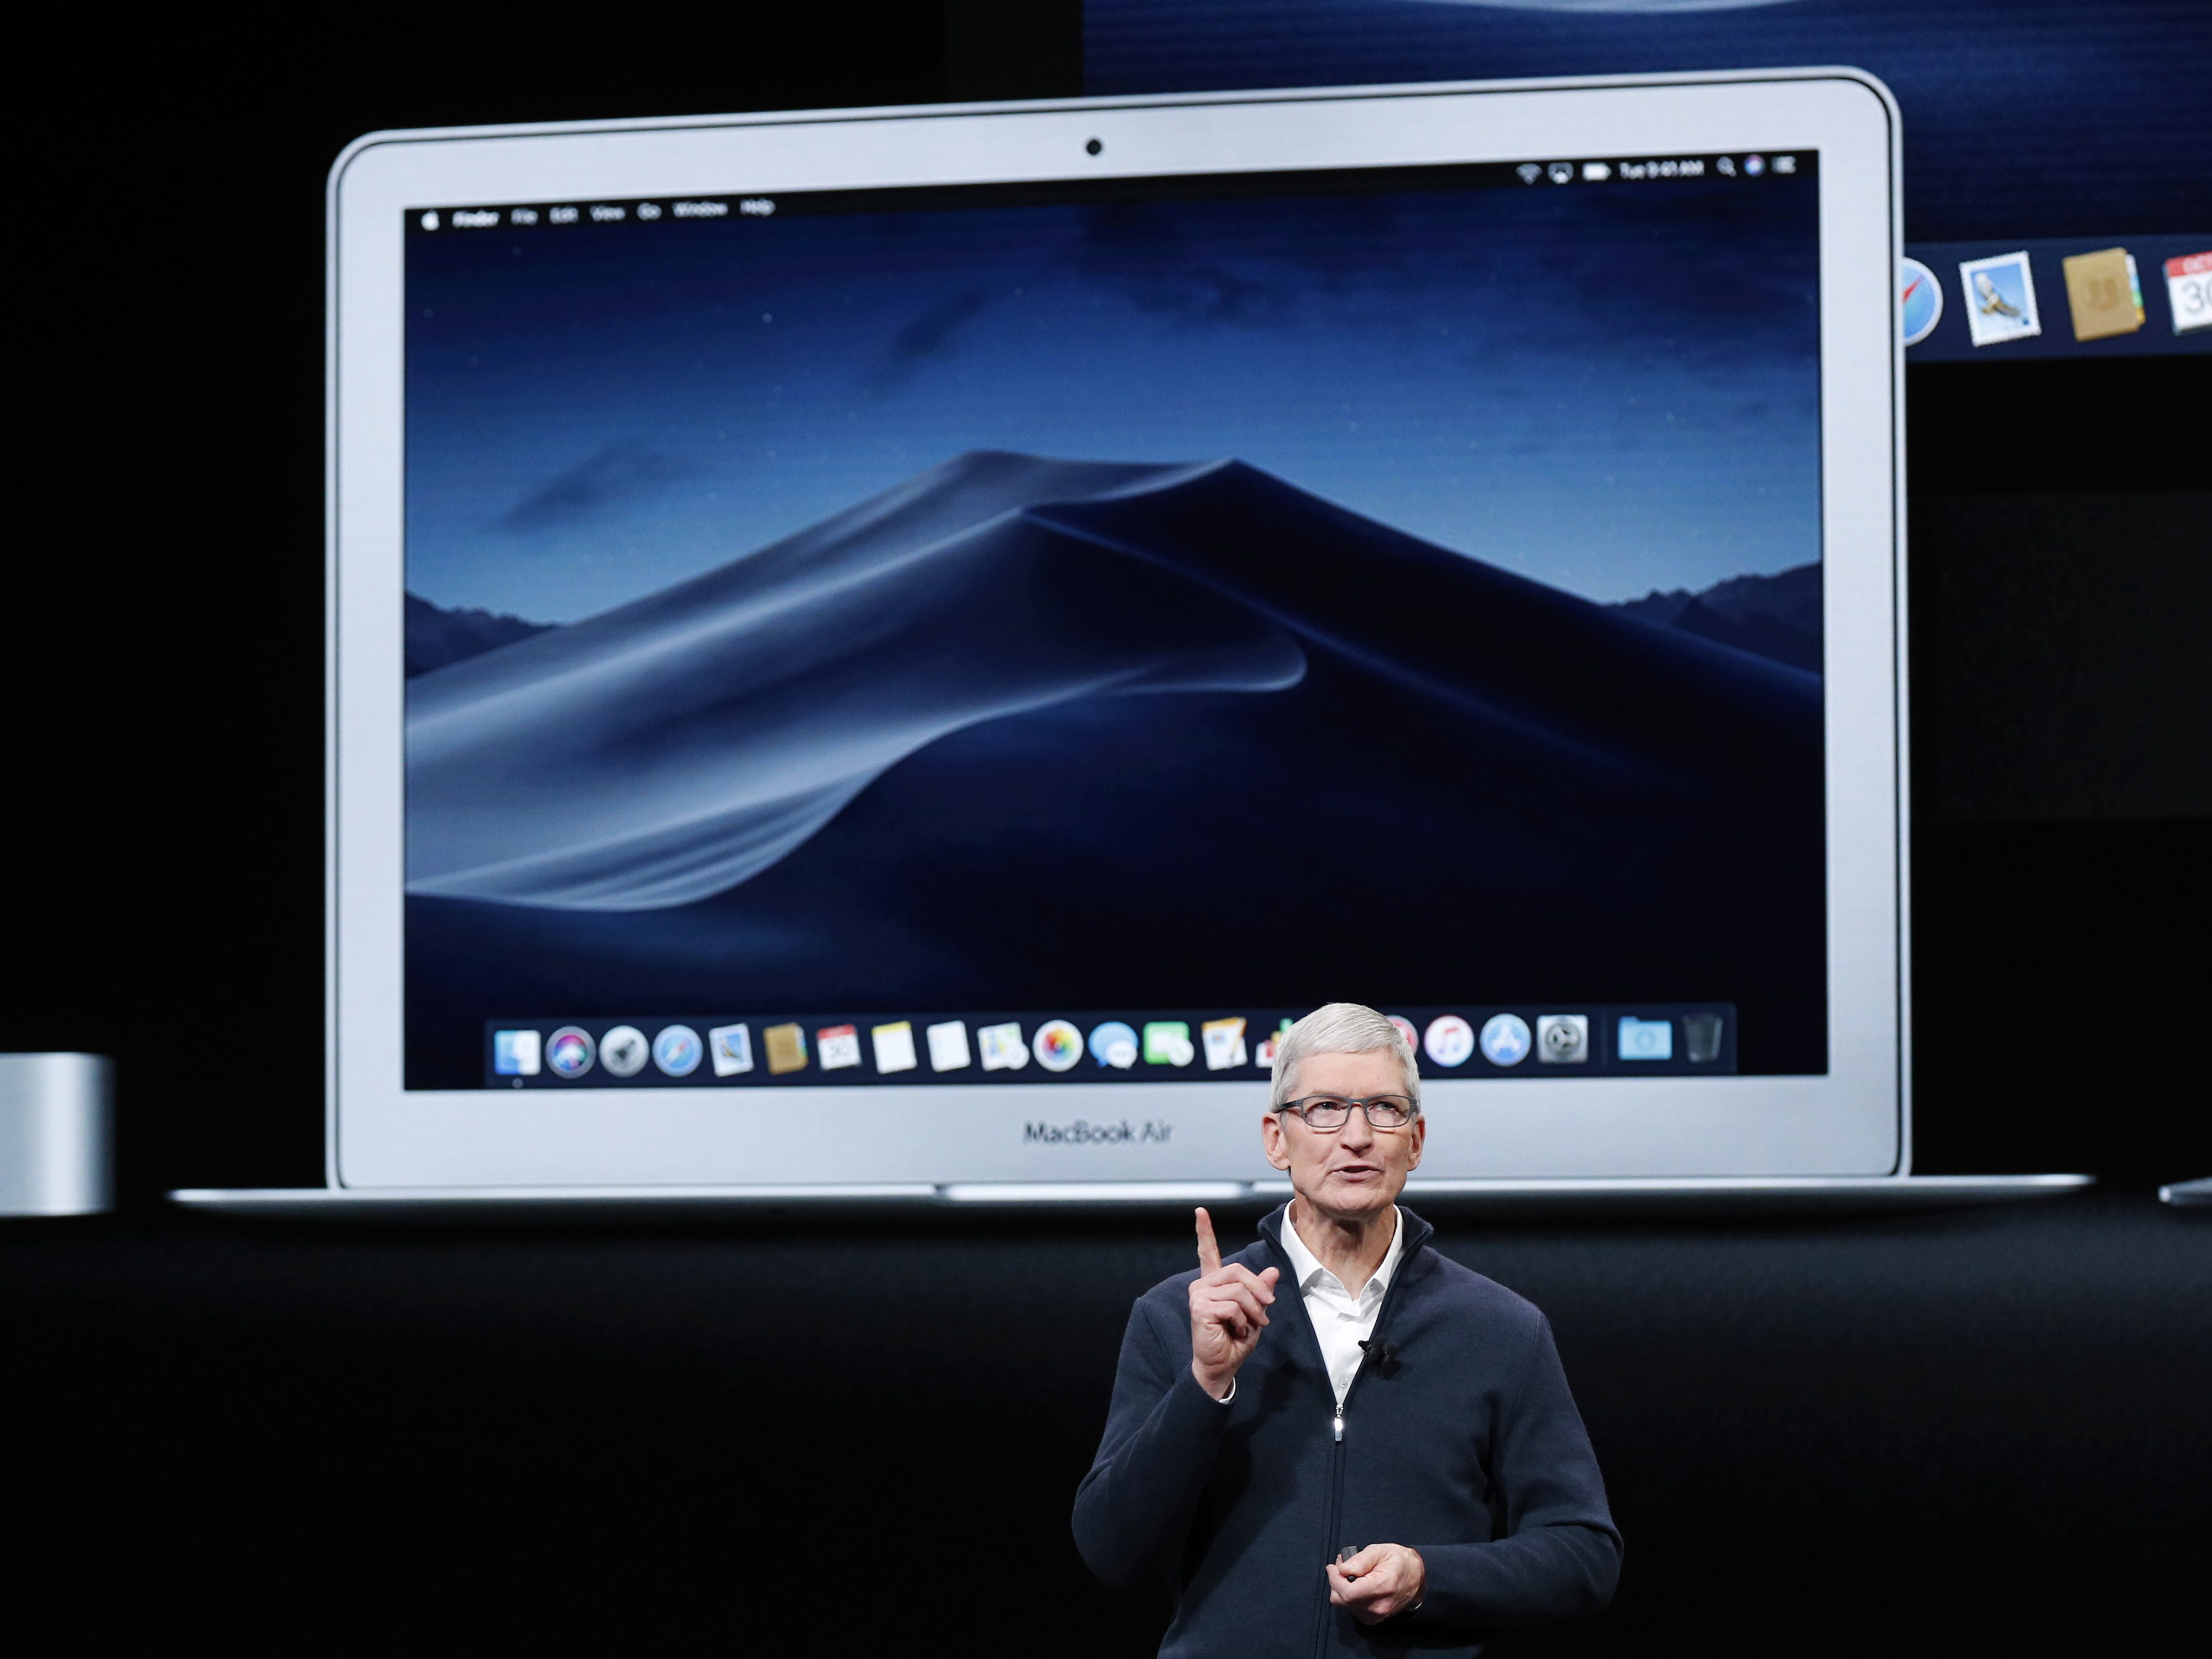 Apple CEO Tim Cook speaks with a MacBook Air behind him during an Apple special event at the Howard Gilman Opera House at the Brooklyn Academy of Music before the start of an Apple event in New York, Tuesday, Oct. 30, 2018.